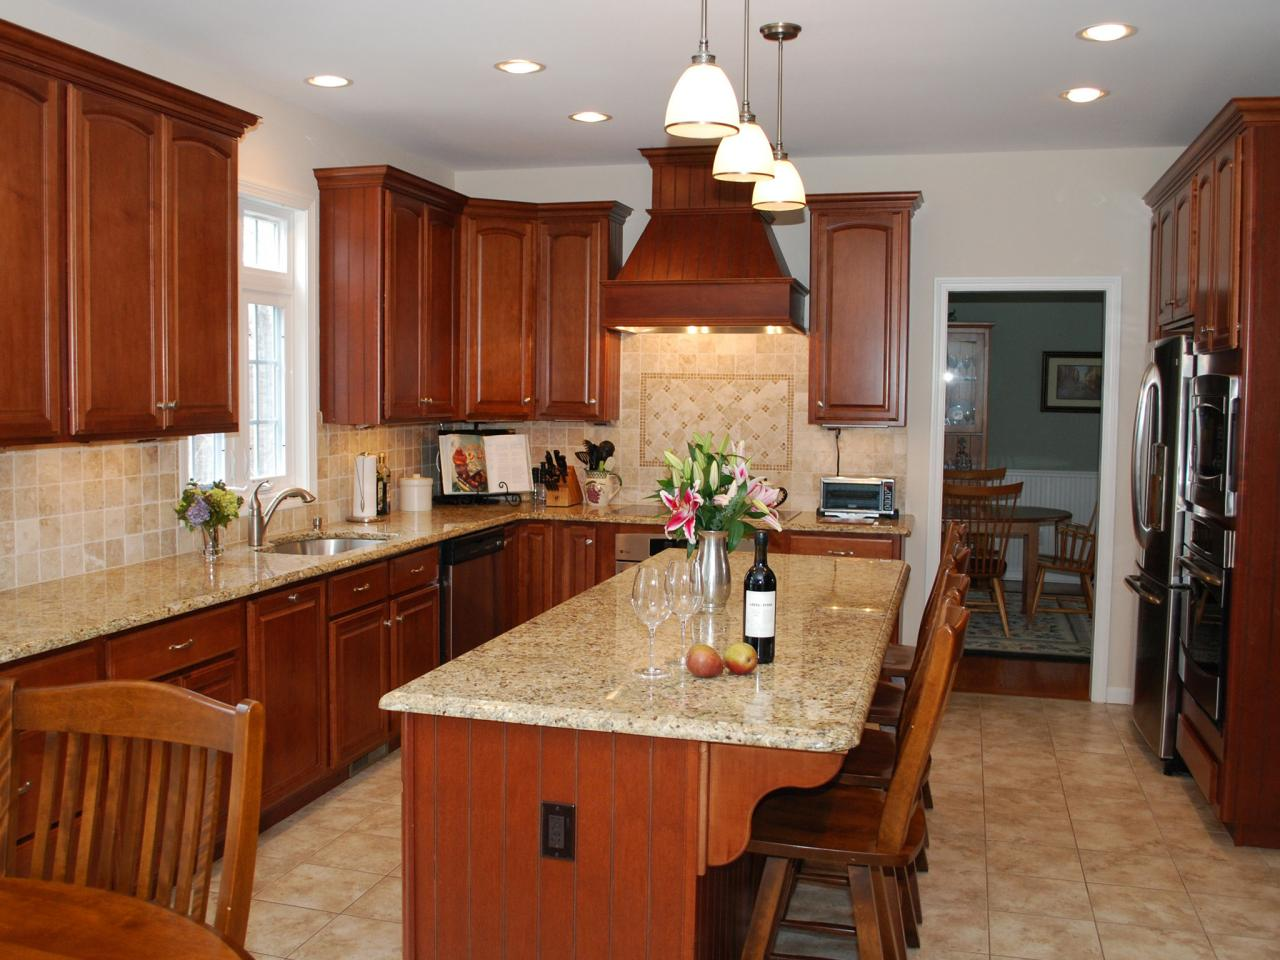 Medium Oak Kitchen Cabinets Granite Countertop Colors Hgtv